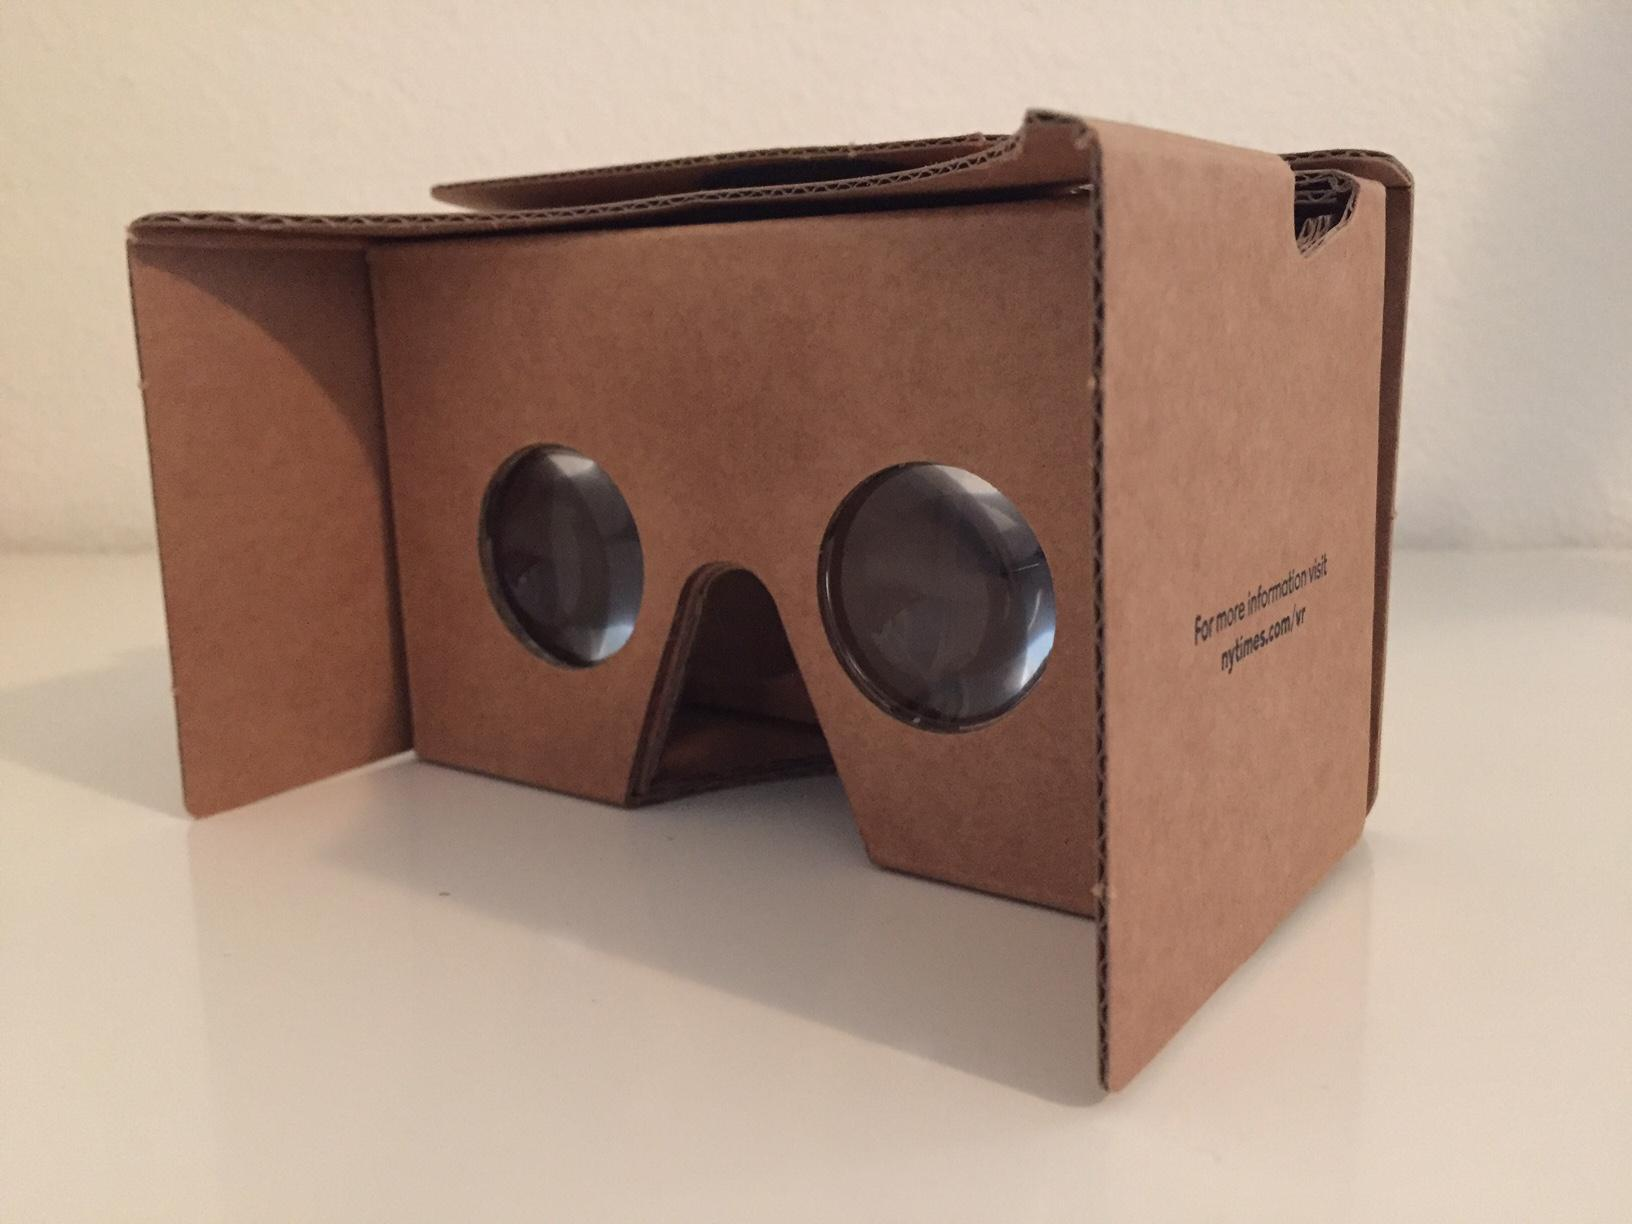 In partnership with Google, the New York Times distributed Google Cardboard eyepieces to its mail subscribers. The Google Cardboard produces a stereoscopic effect and makes objects appear 3D. Photo by Dhara Yu.